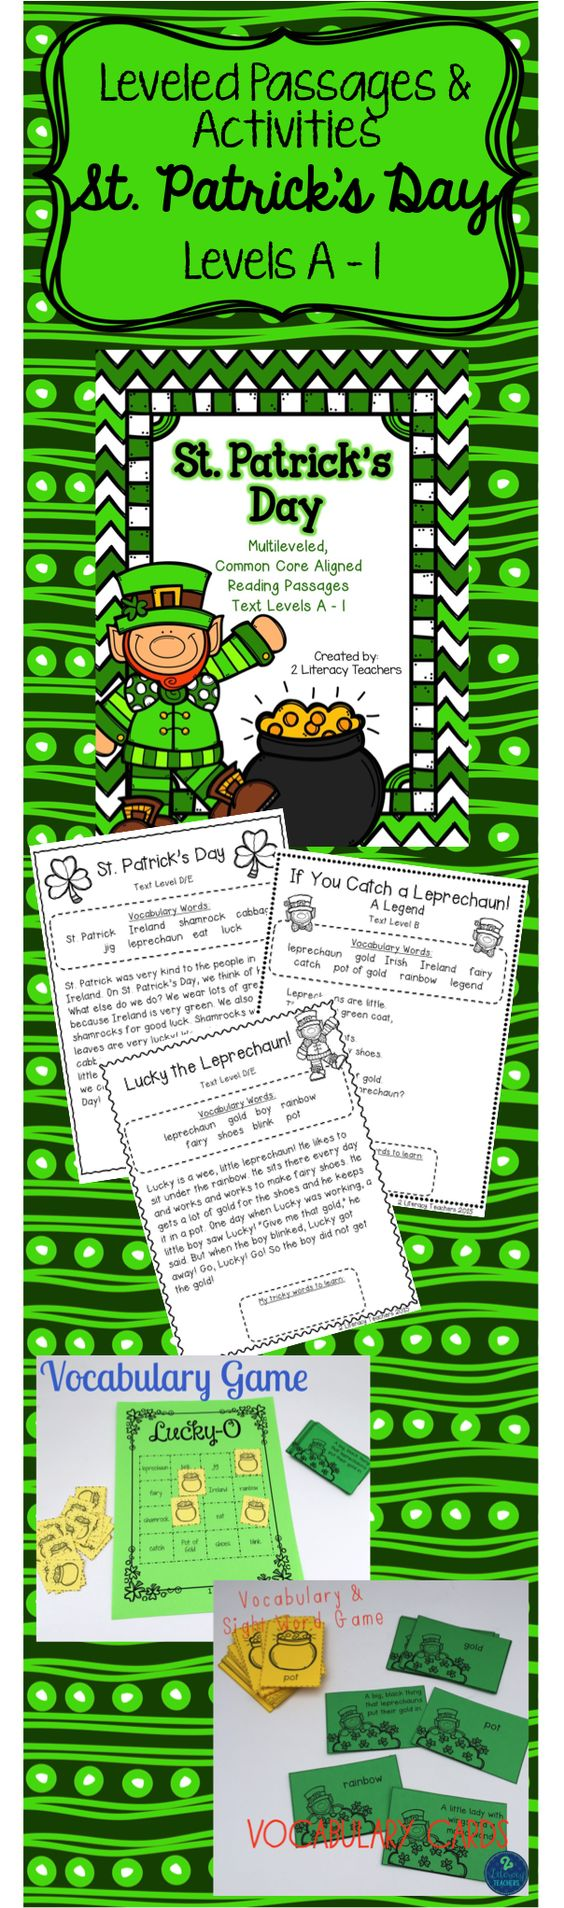 Worksheet Levelled Reading Passages st patricks day ccss aligned leveled reading passages and activities perfect for differentiation your whole class